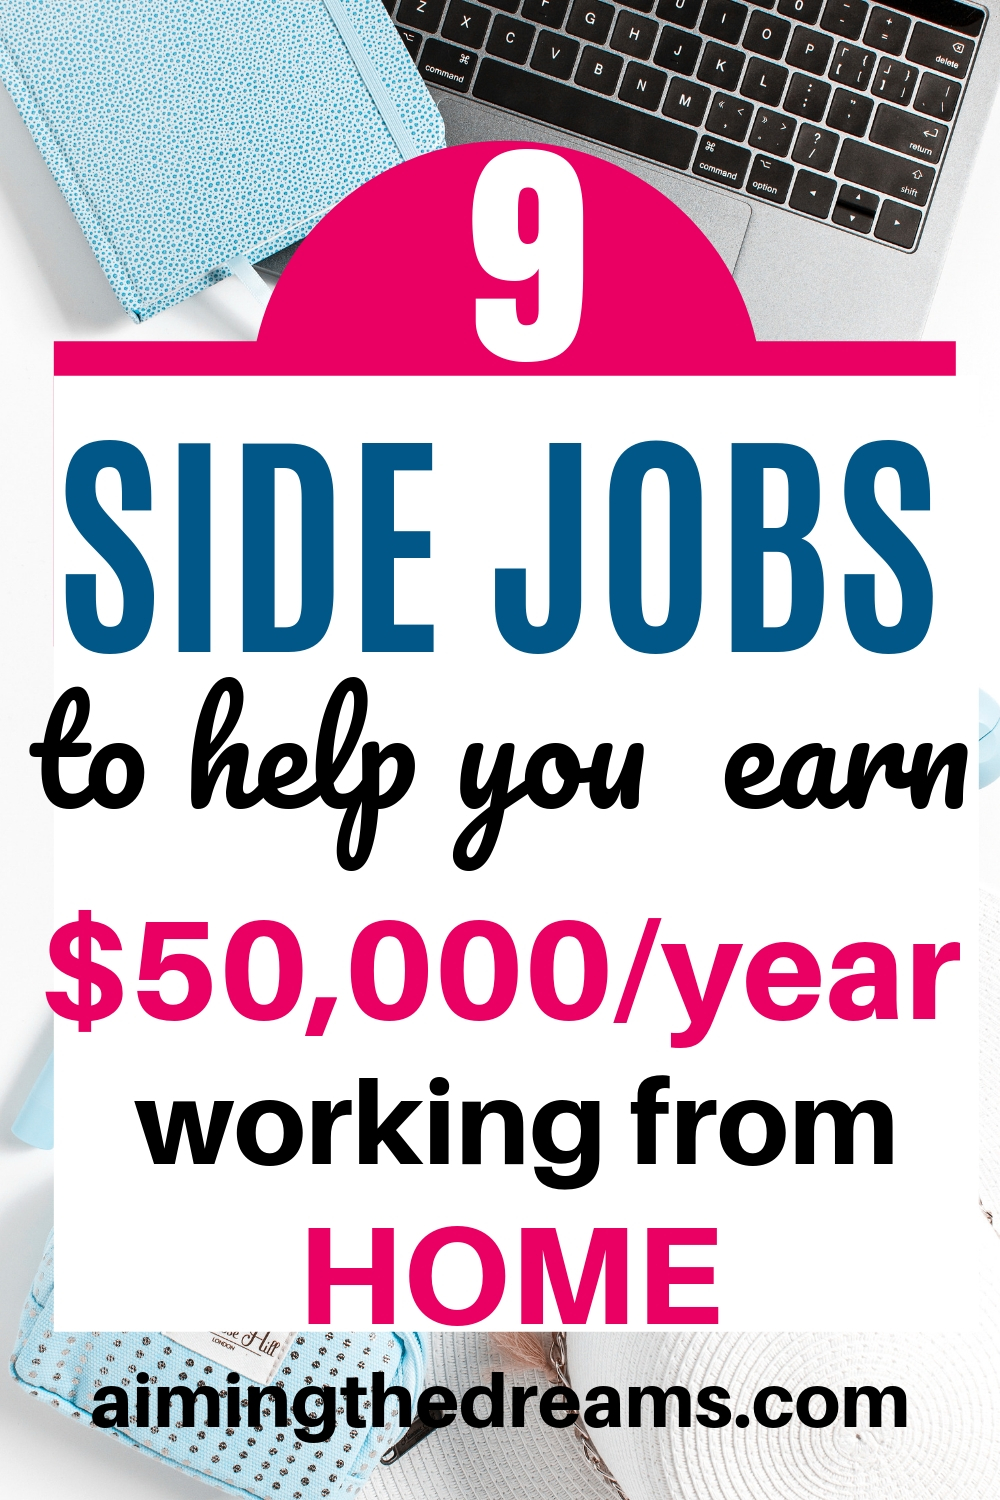 9 side jobs to earn $50,000 a year from home. Side hustles can become your full time income.